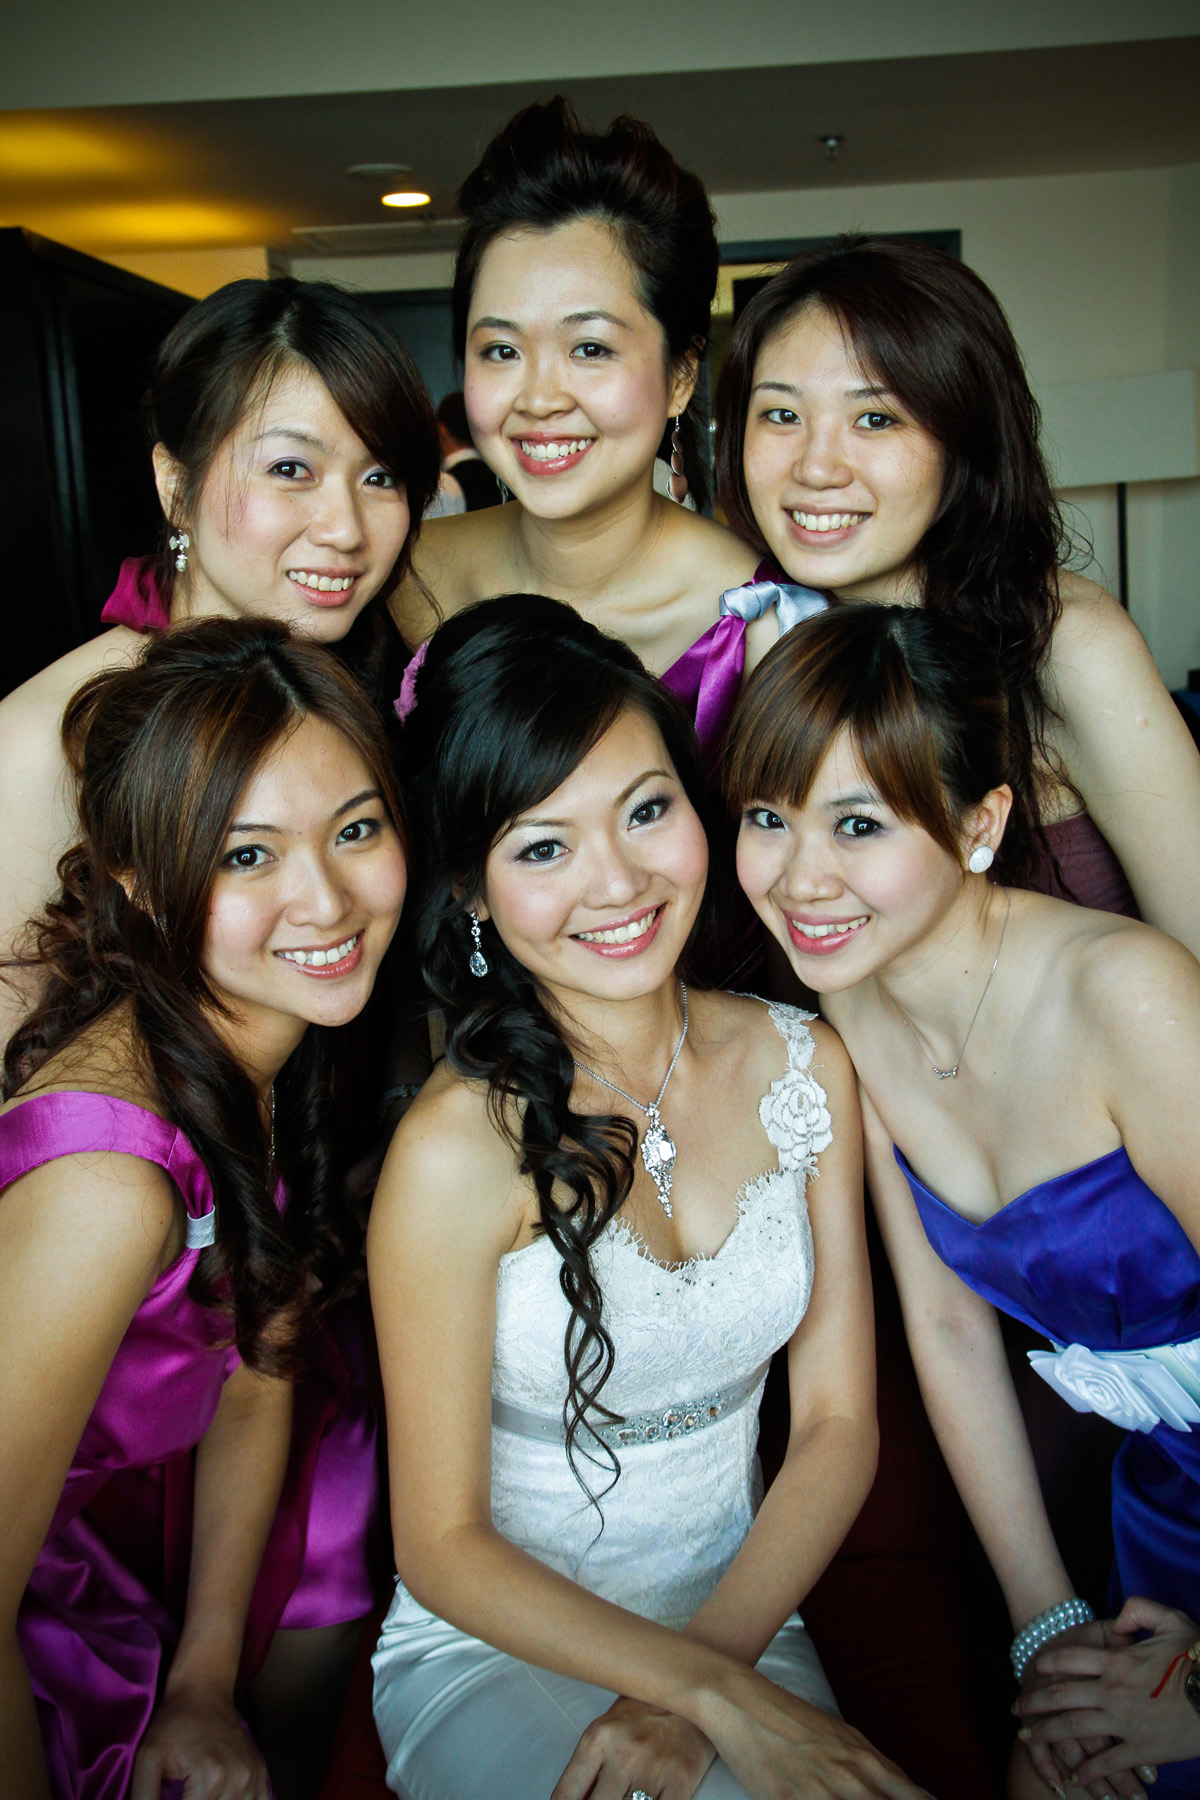 Celeste and her bridesmaids in purple theme wedding reception